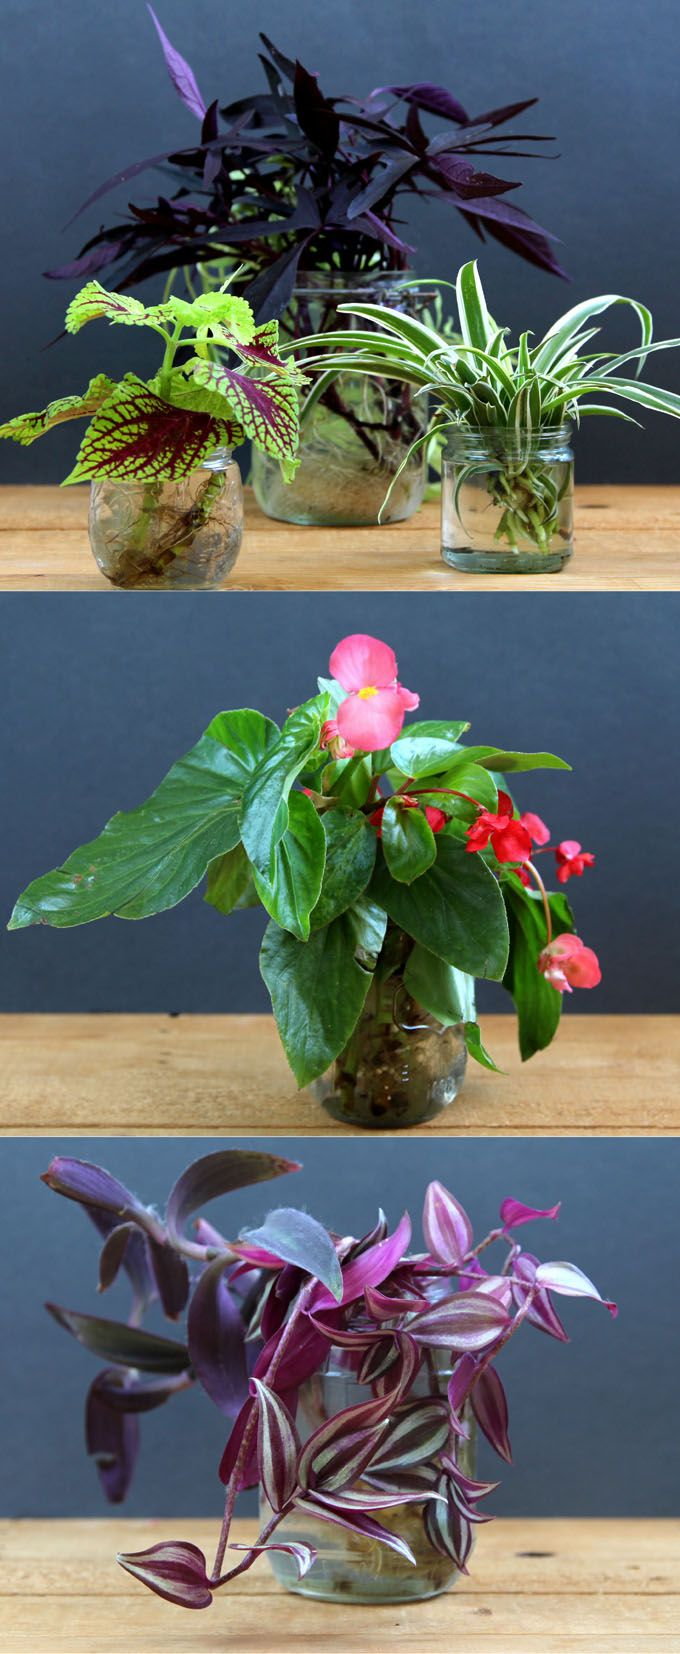 Grow Beautiful Indoor Plants In Glass Bottles - Page 2 of 2